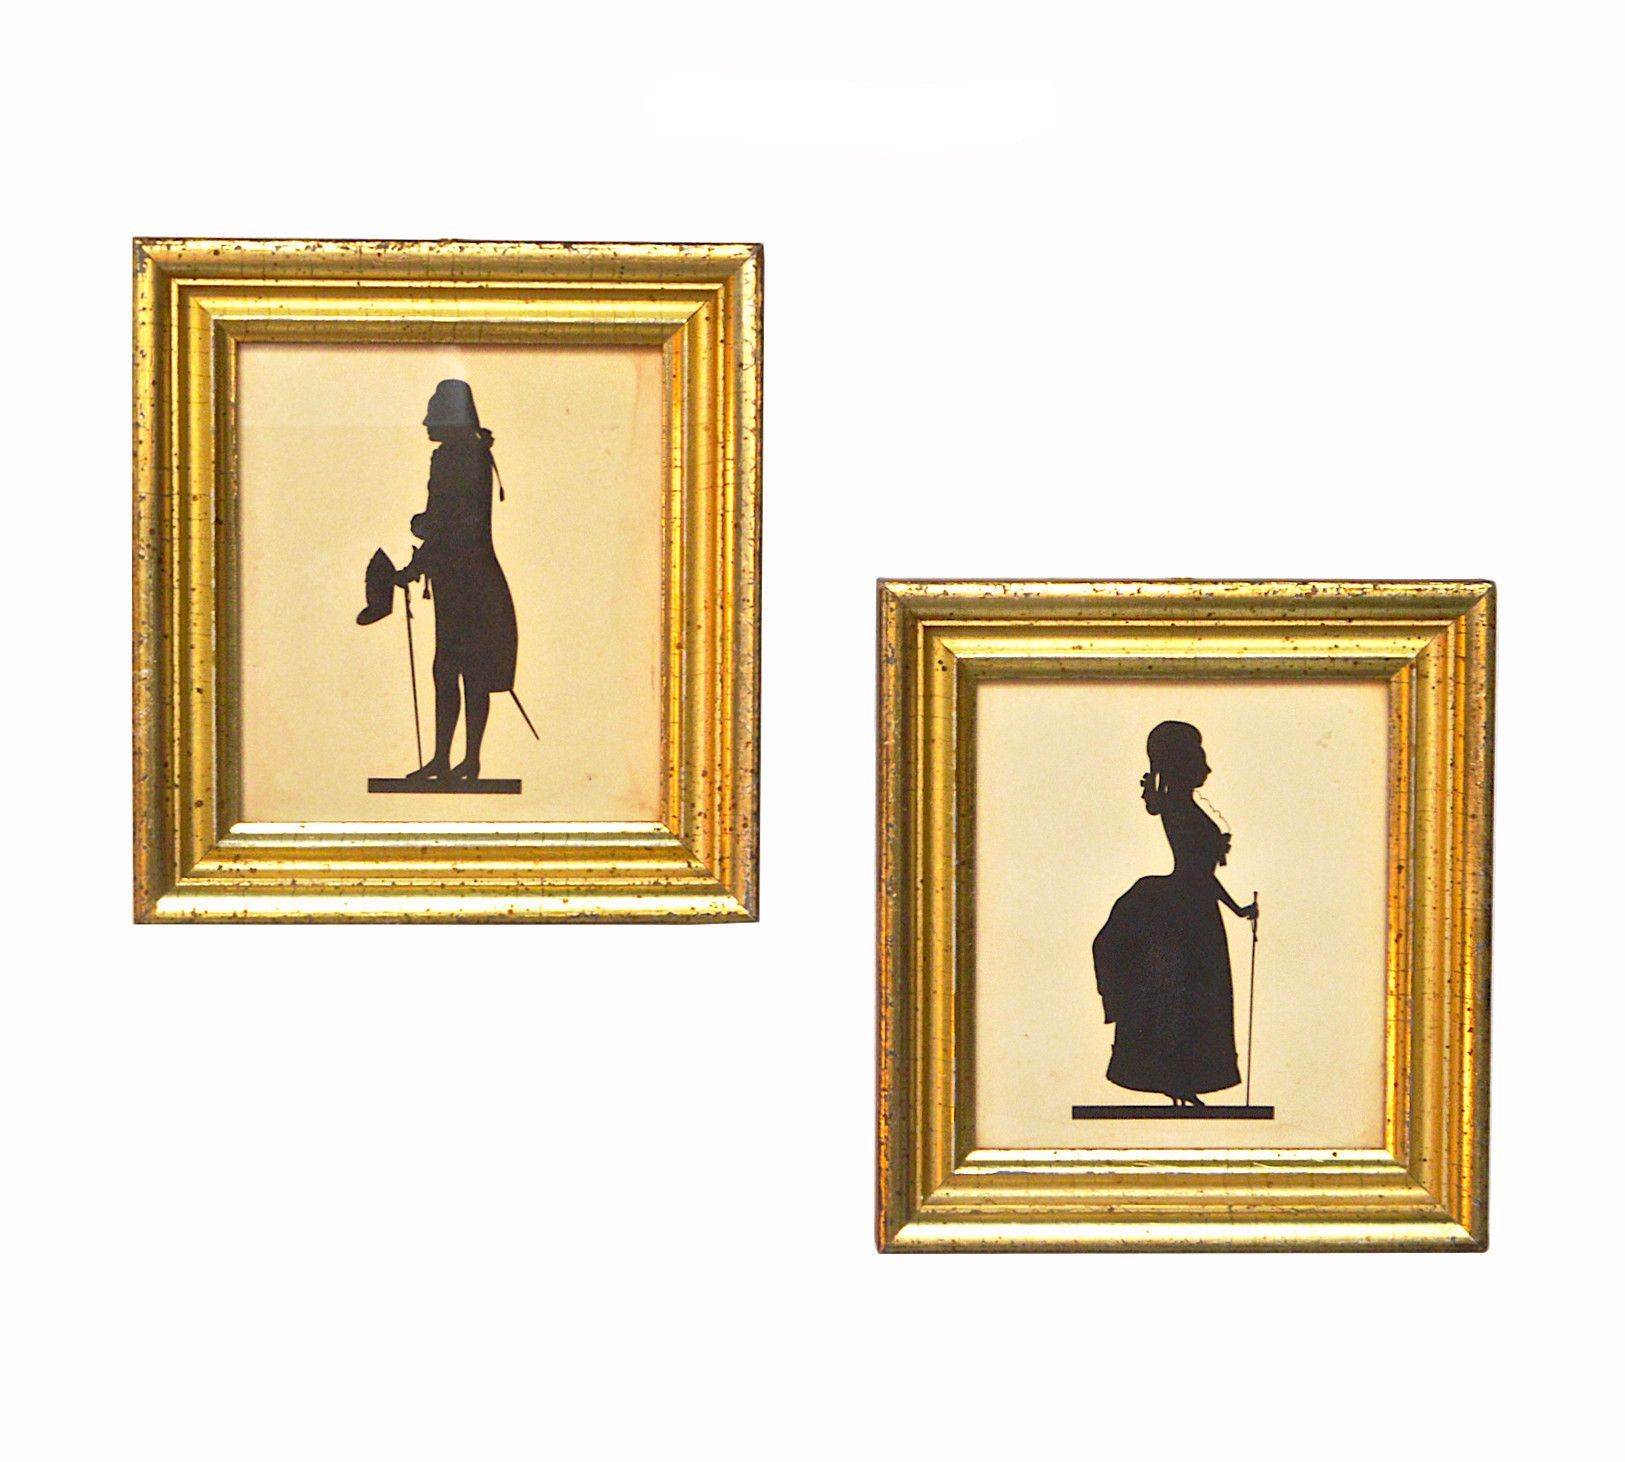 Borghese Framed Silhouette Pair   Antiques &Collectibles   Pinterest ...